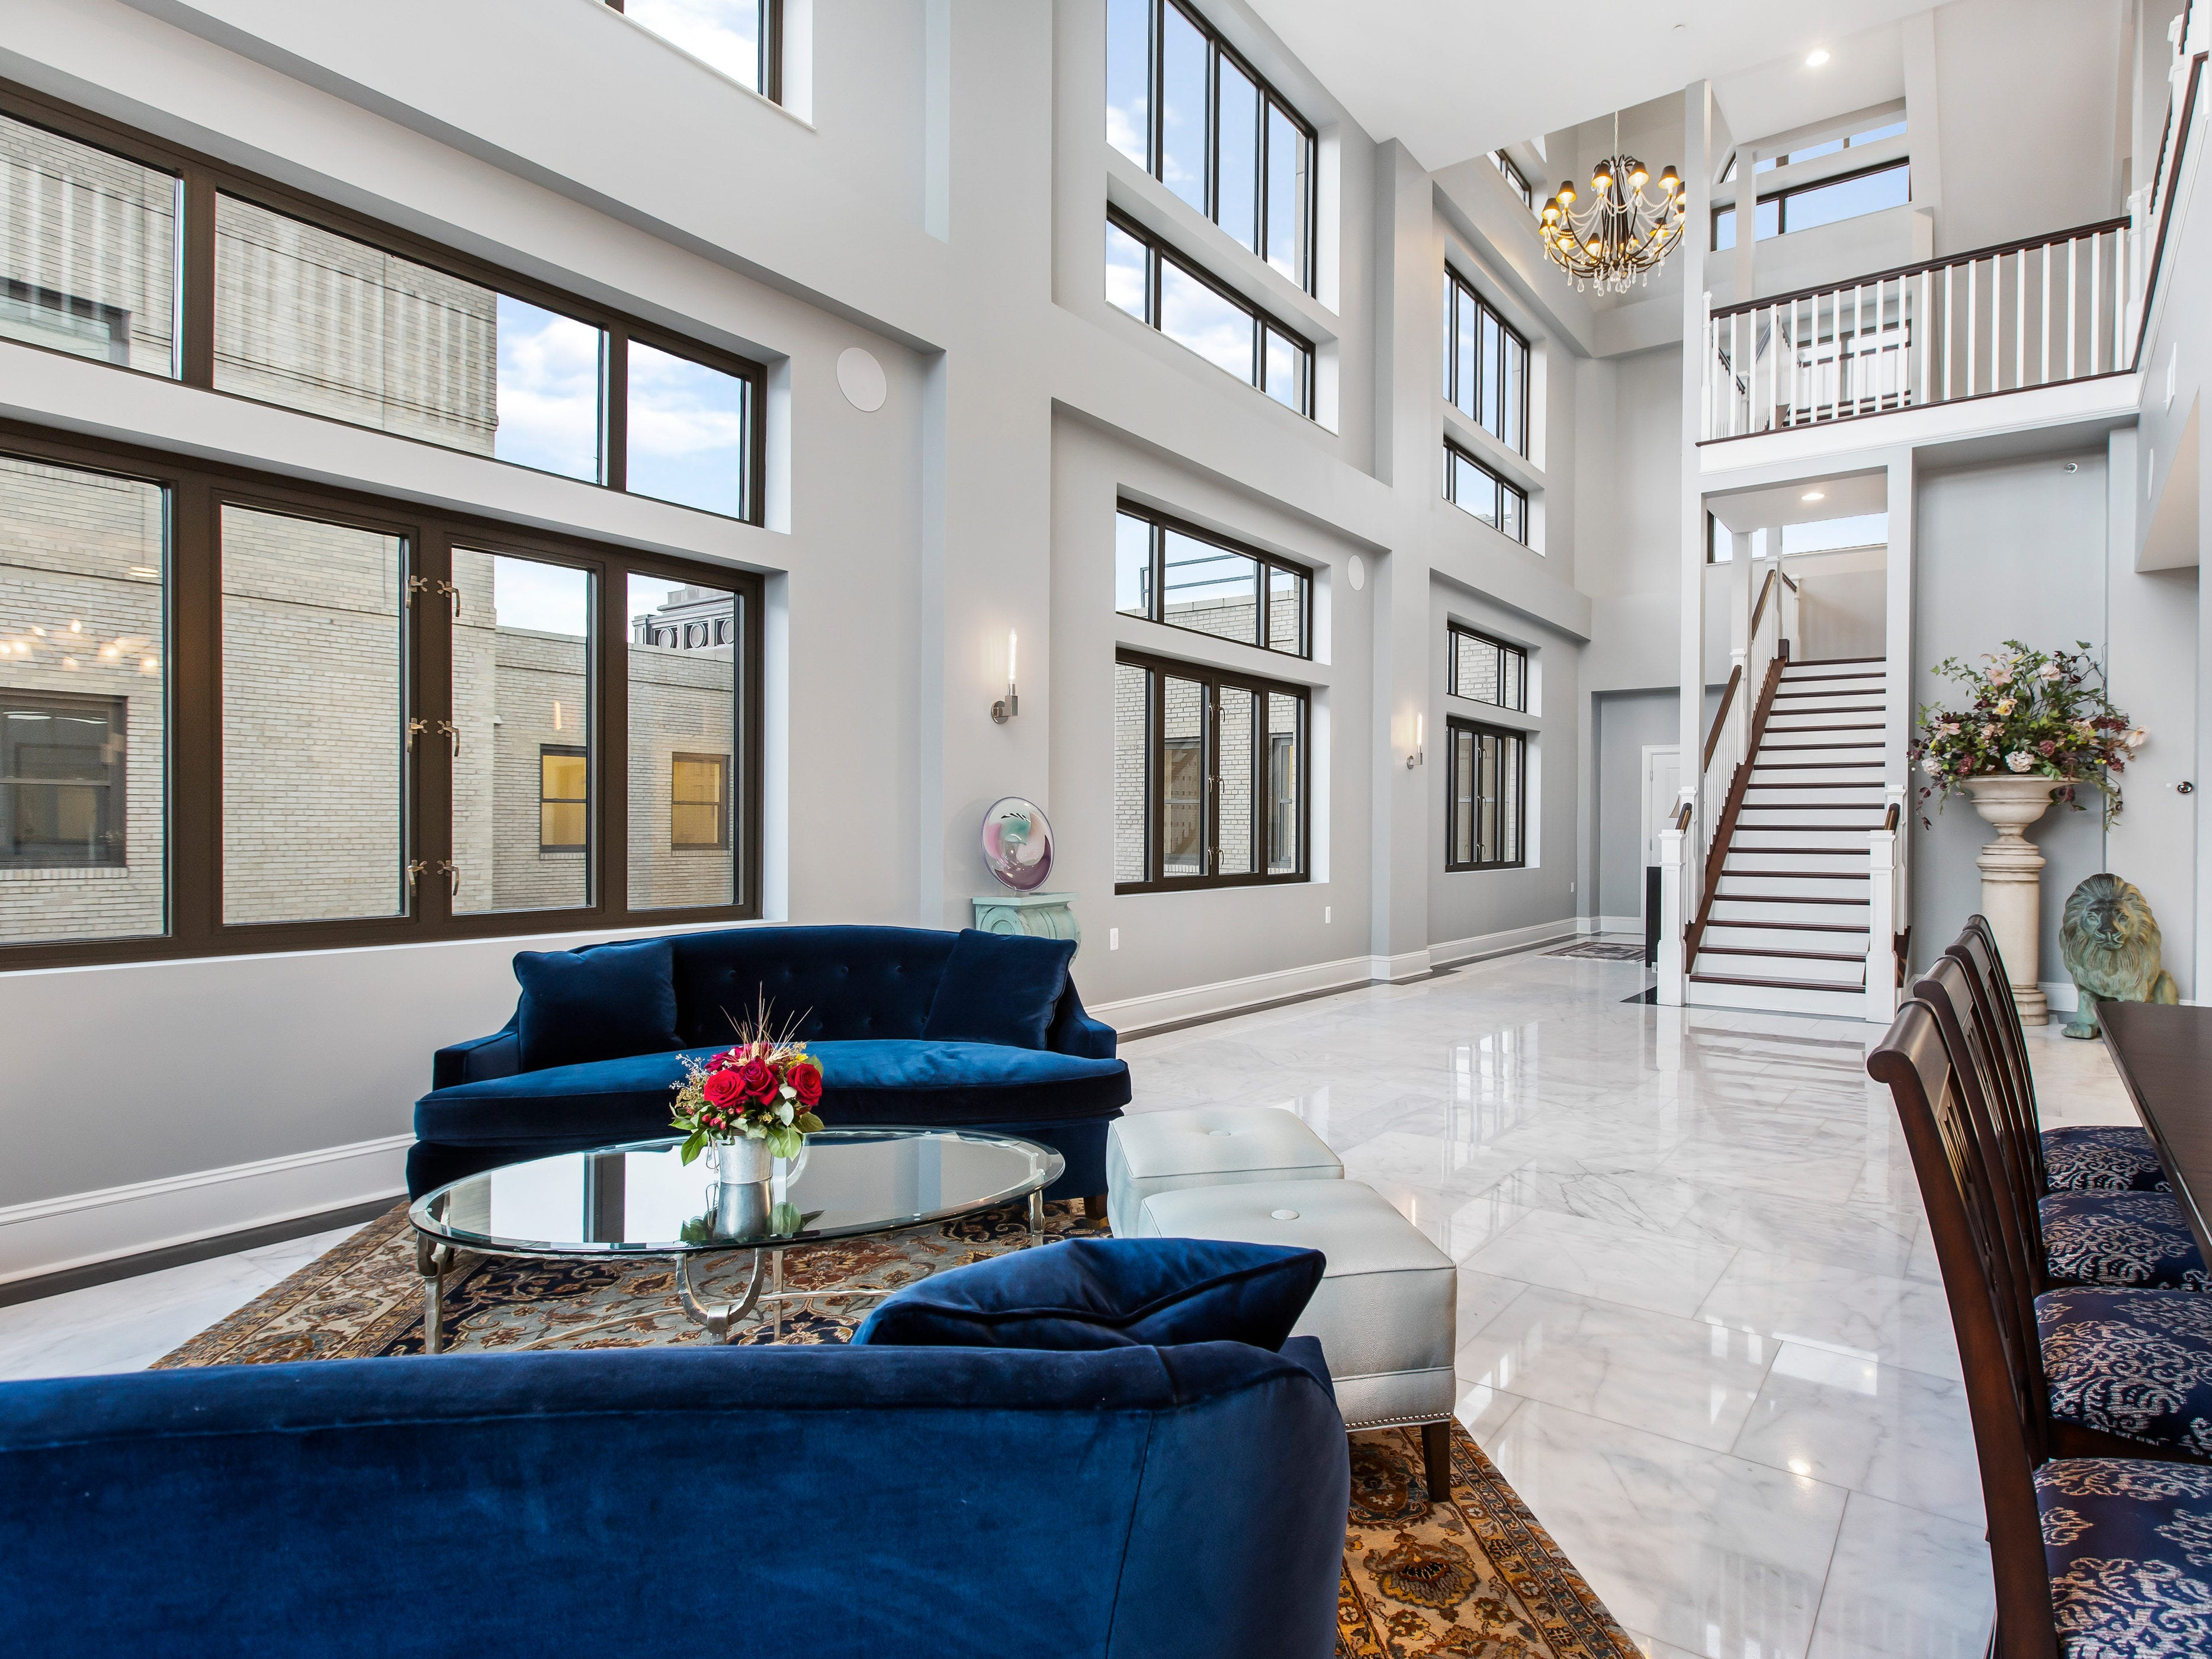 The foyer is 3 stories high an opens under soaring ceilings and walls of windows featuring stunning views of the Detroit skyline and the Detroit River.